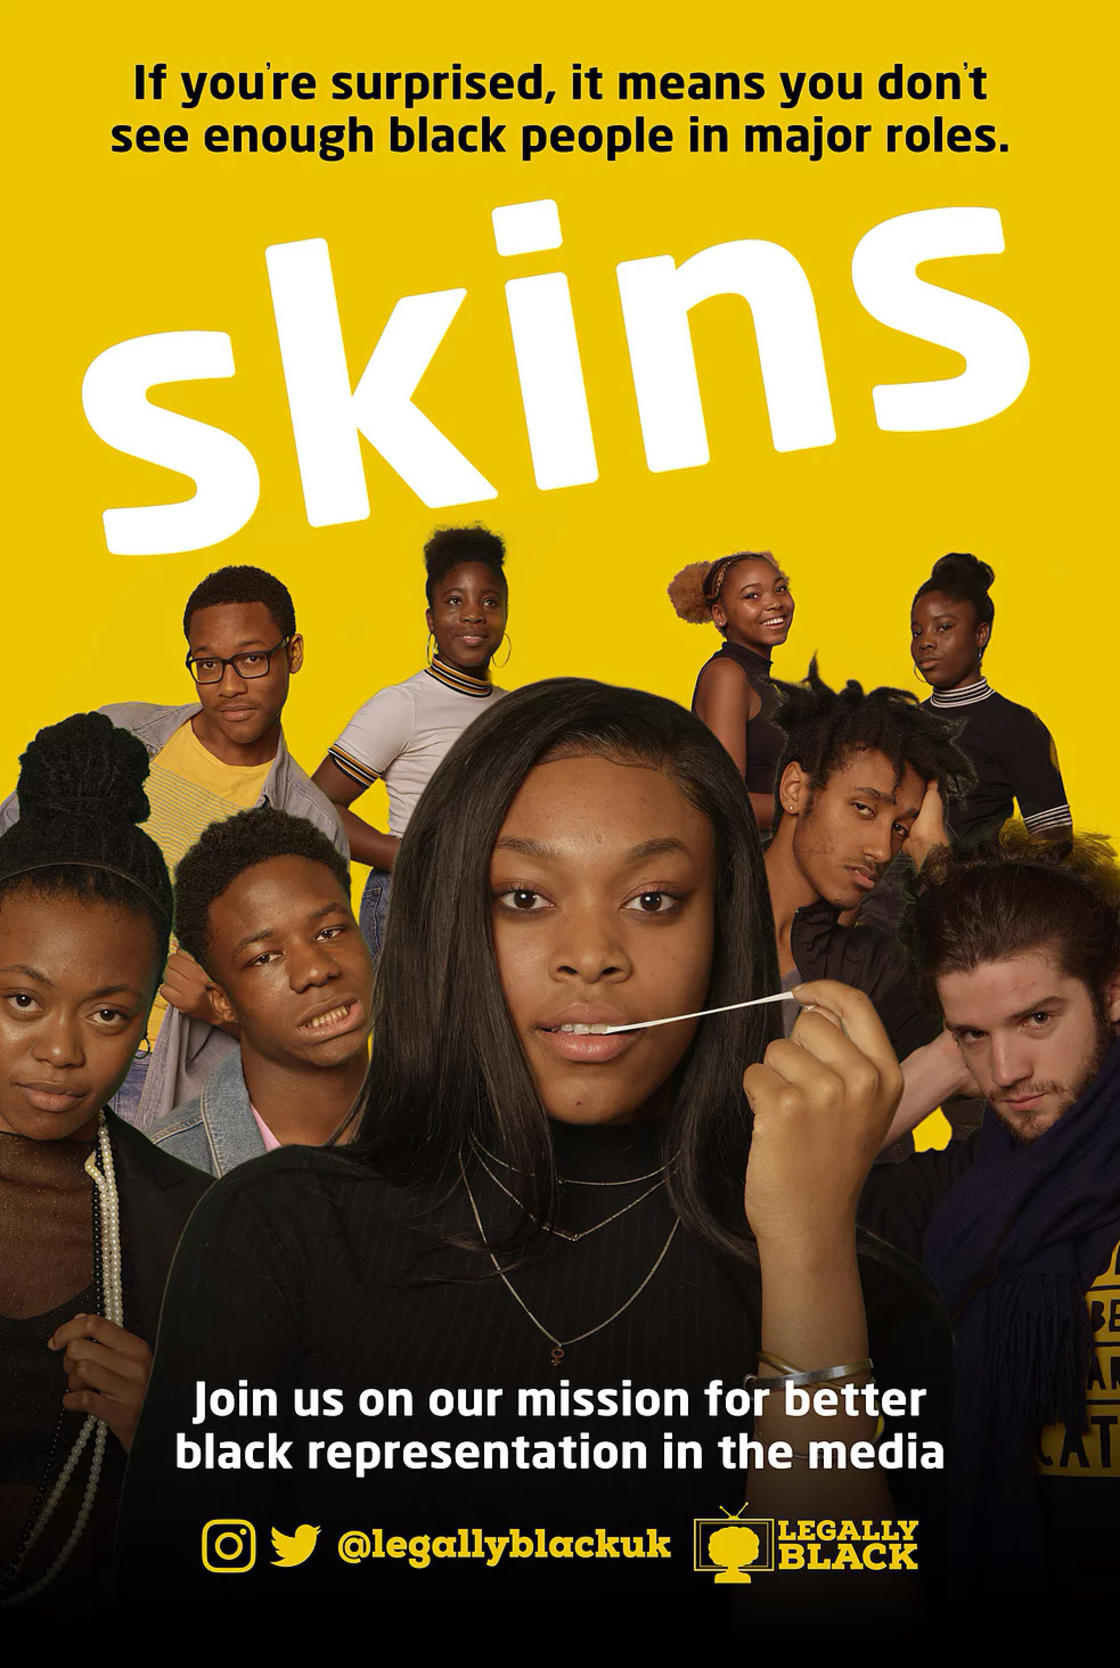 They remix cult movies to criticize the lack of black representation in the media